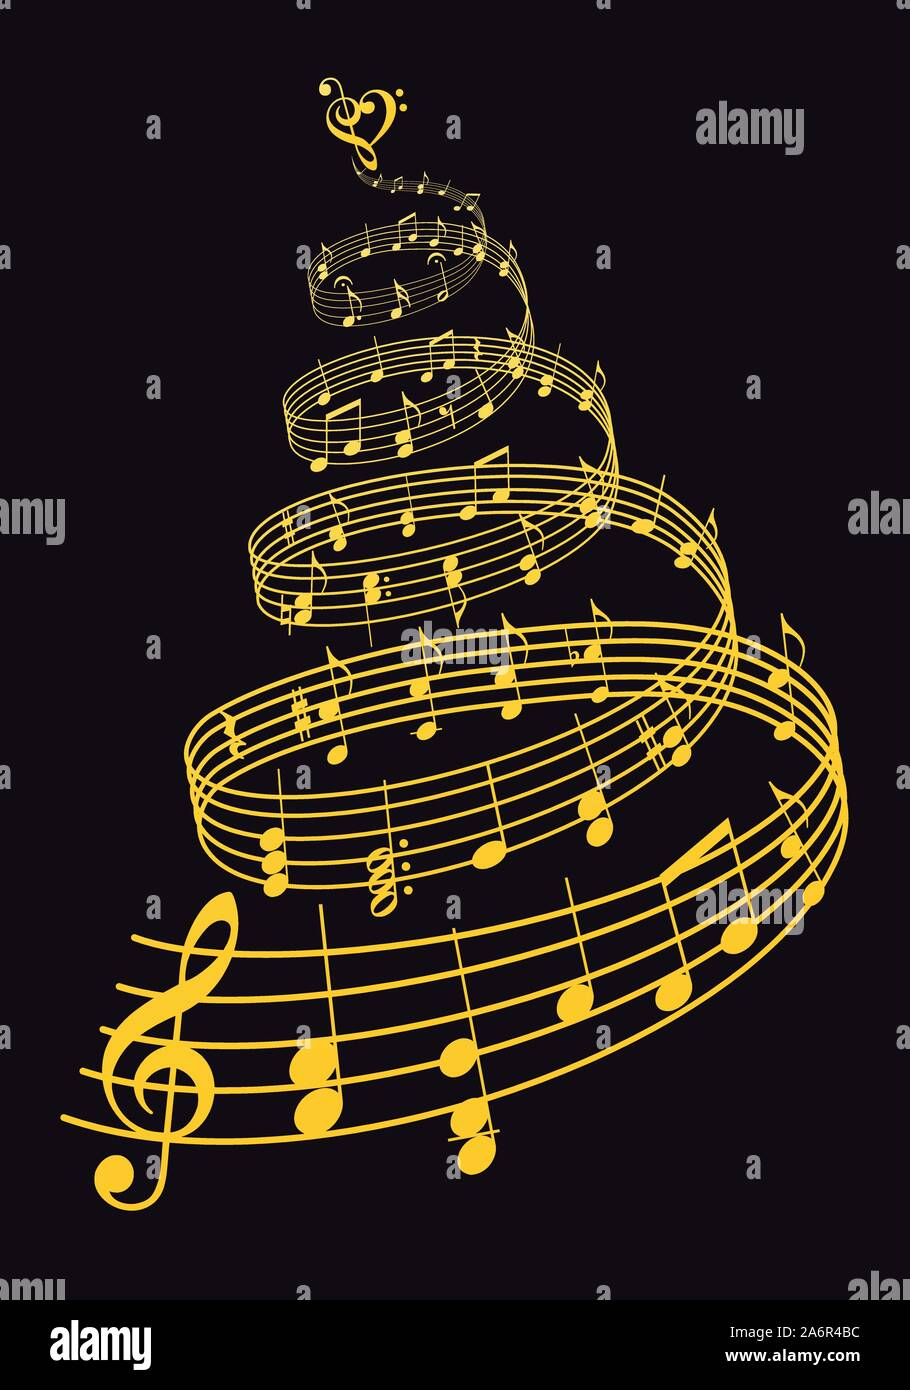 Gold Christmas tree with music notes over black background, vector illustration Stock Vector